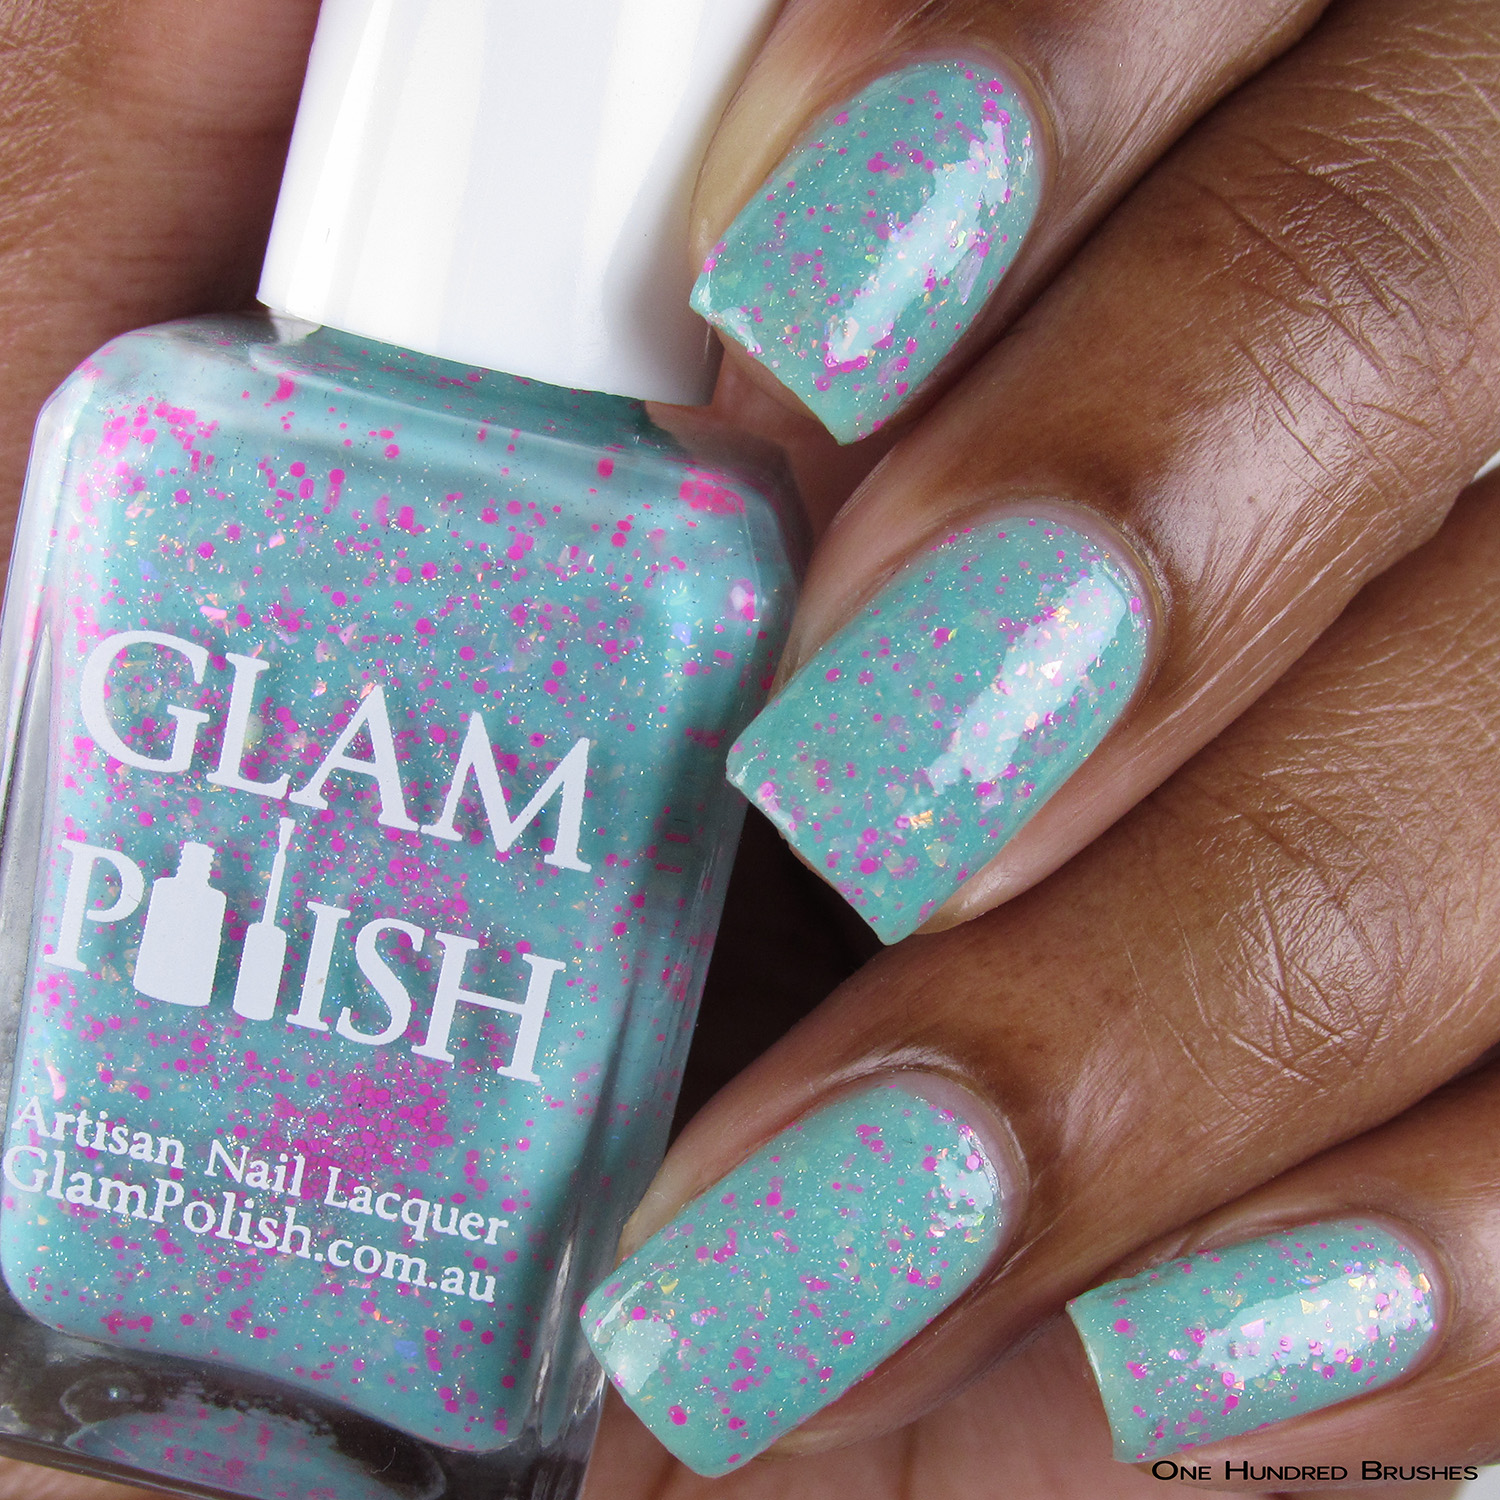 Son Of A Beach - Bottle Front - Mermaid Tails Collection - Glam Polish